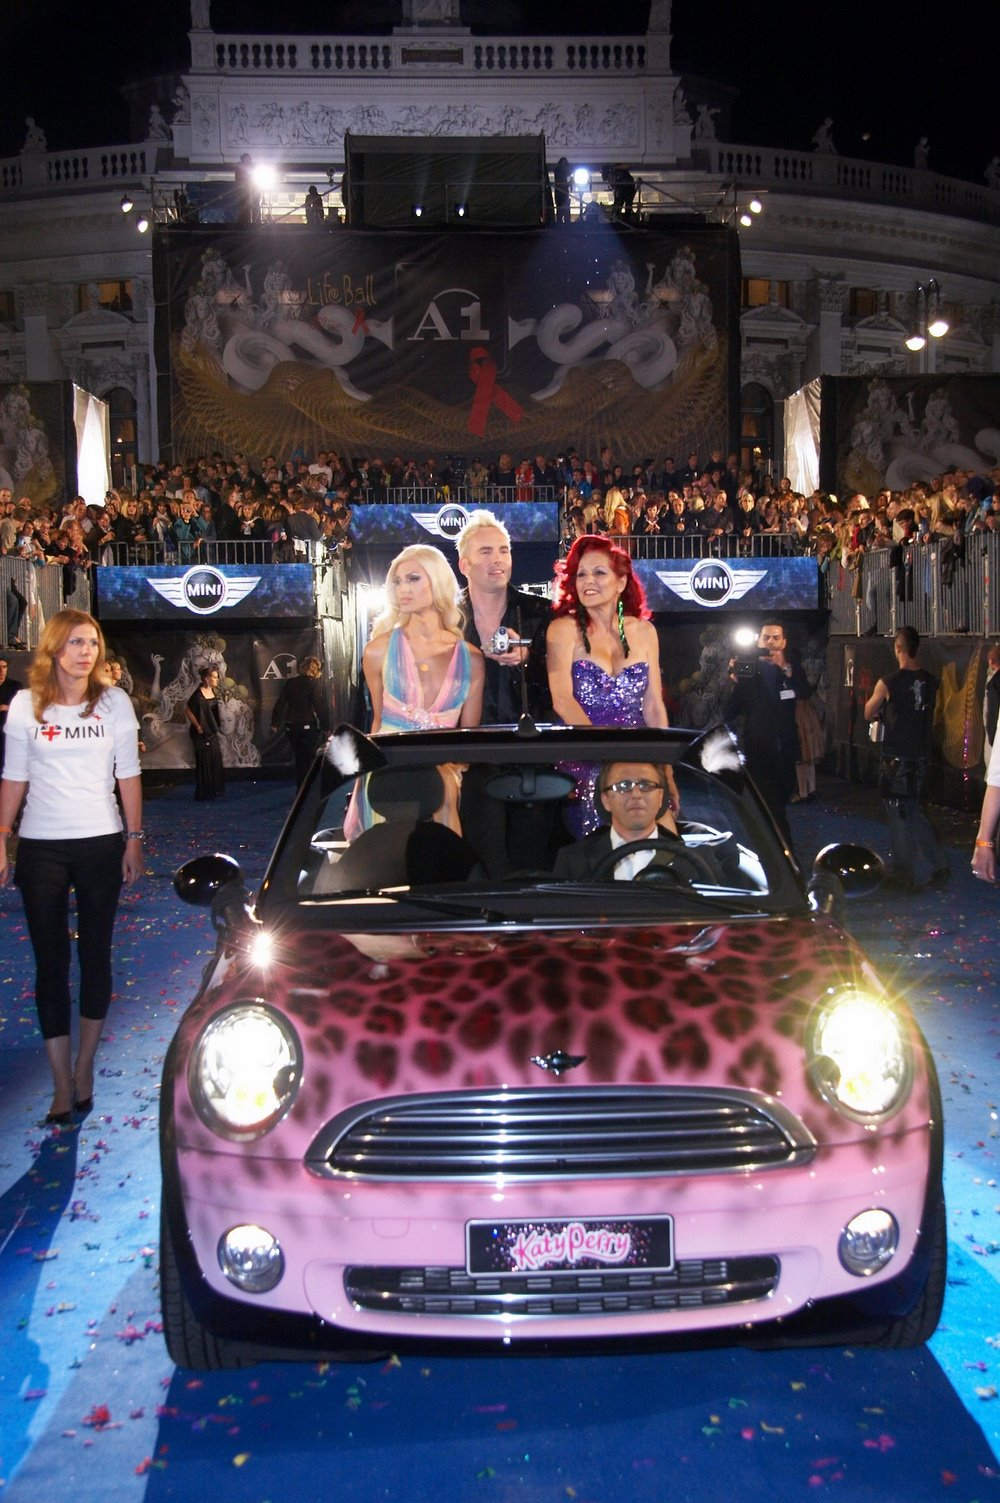 Mini Inspired By Katy Perry At The Life Ball 100182092 L Jpg